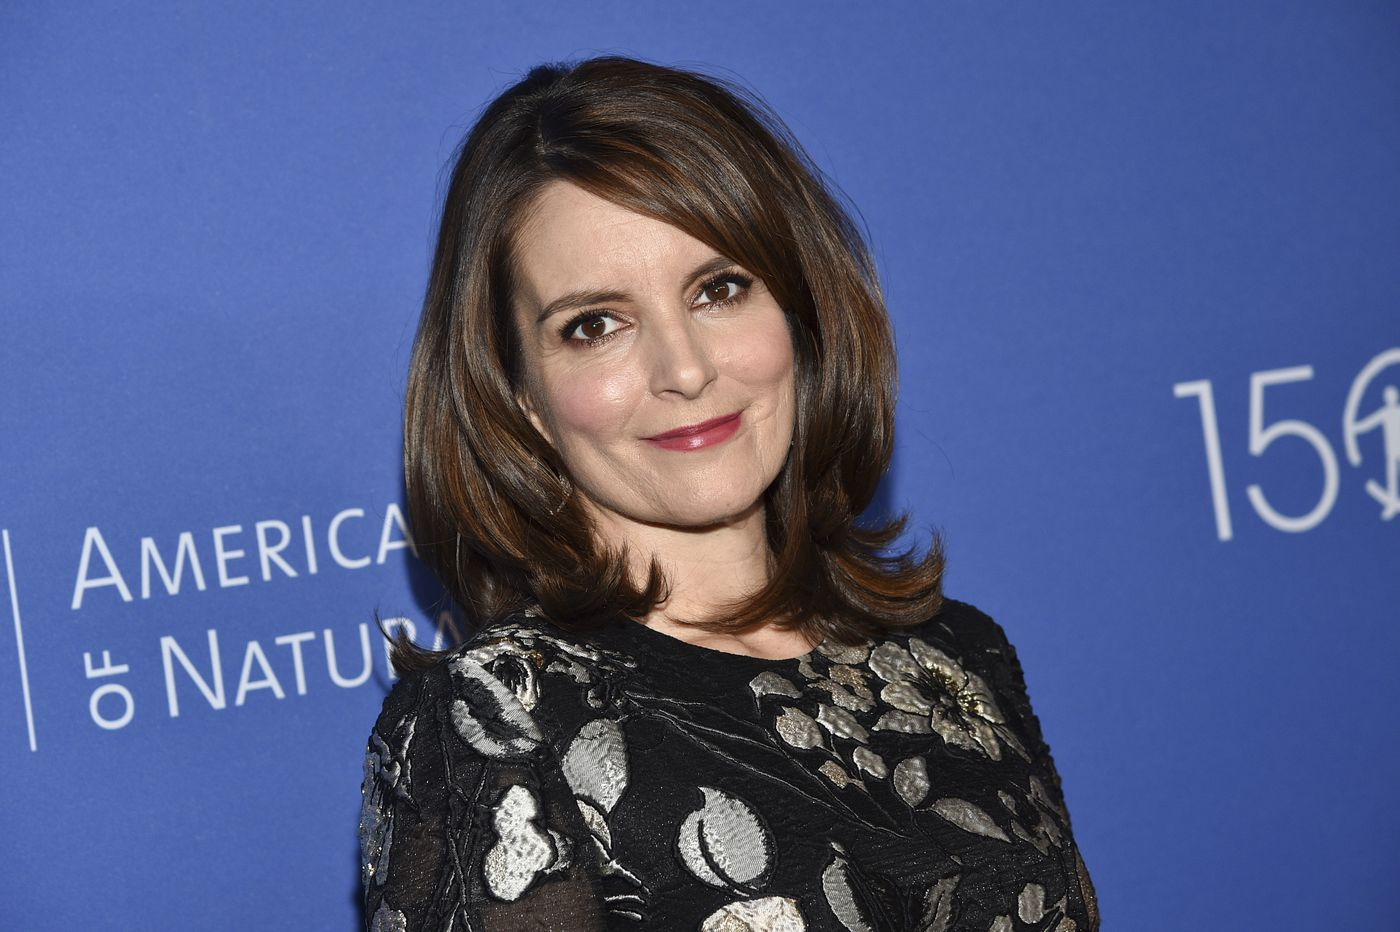 Tina Fey gets '30 Rock' blackface episodes pulled from distribution, with Comcast's support